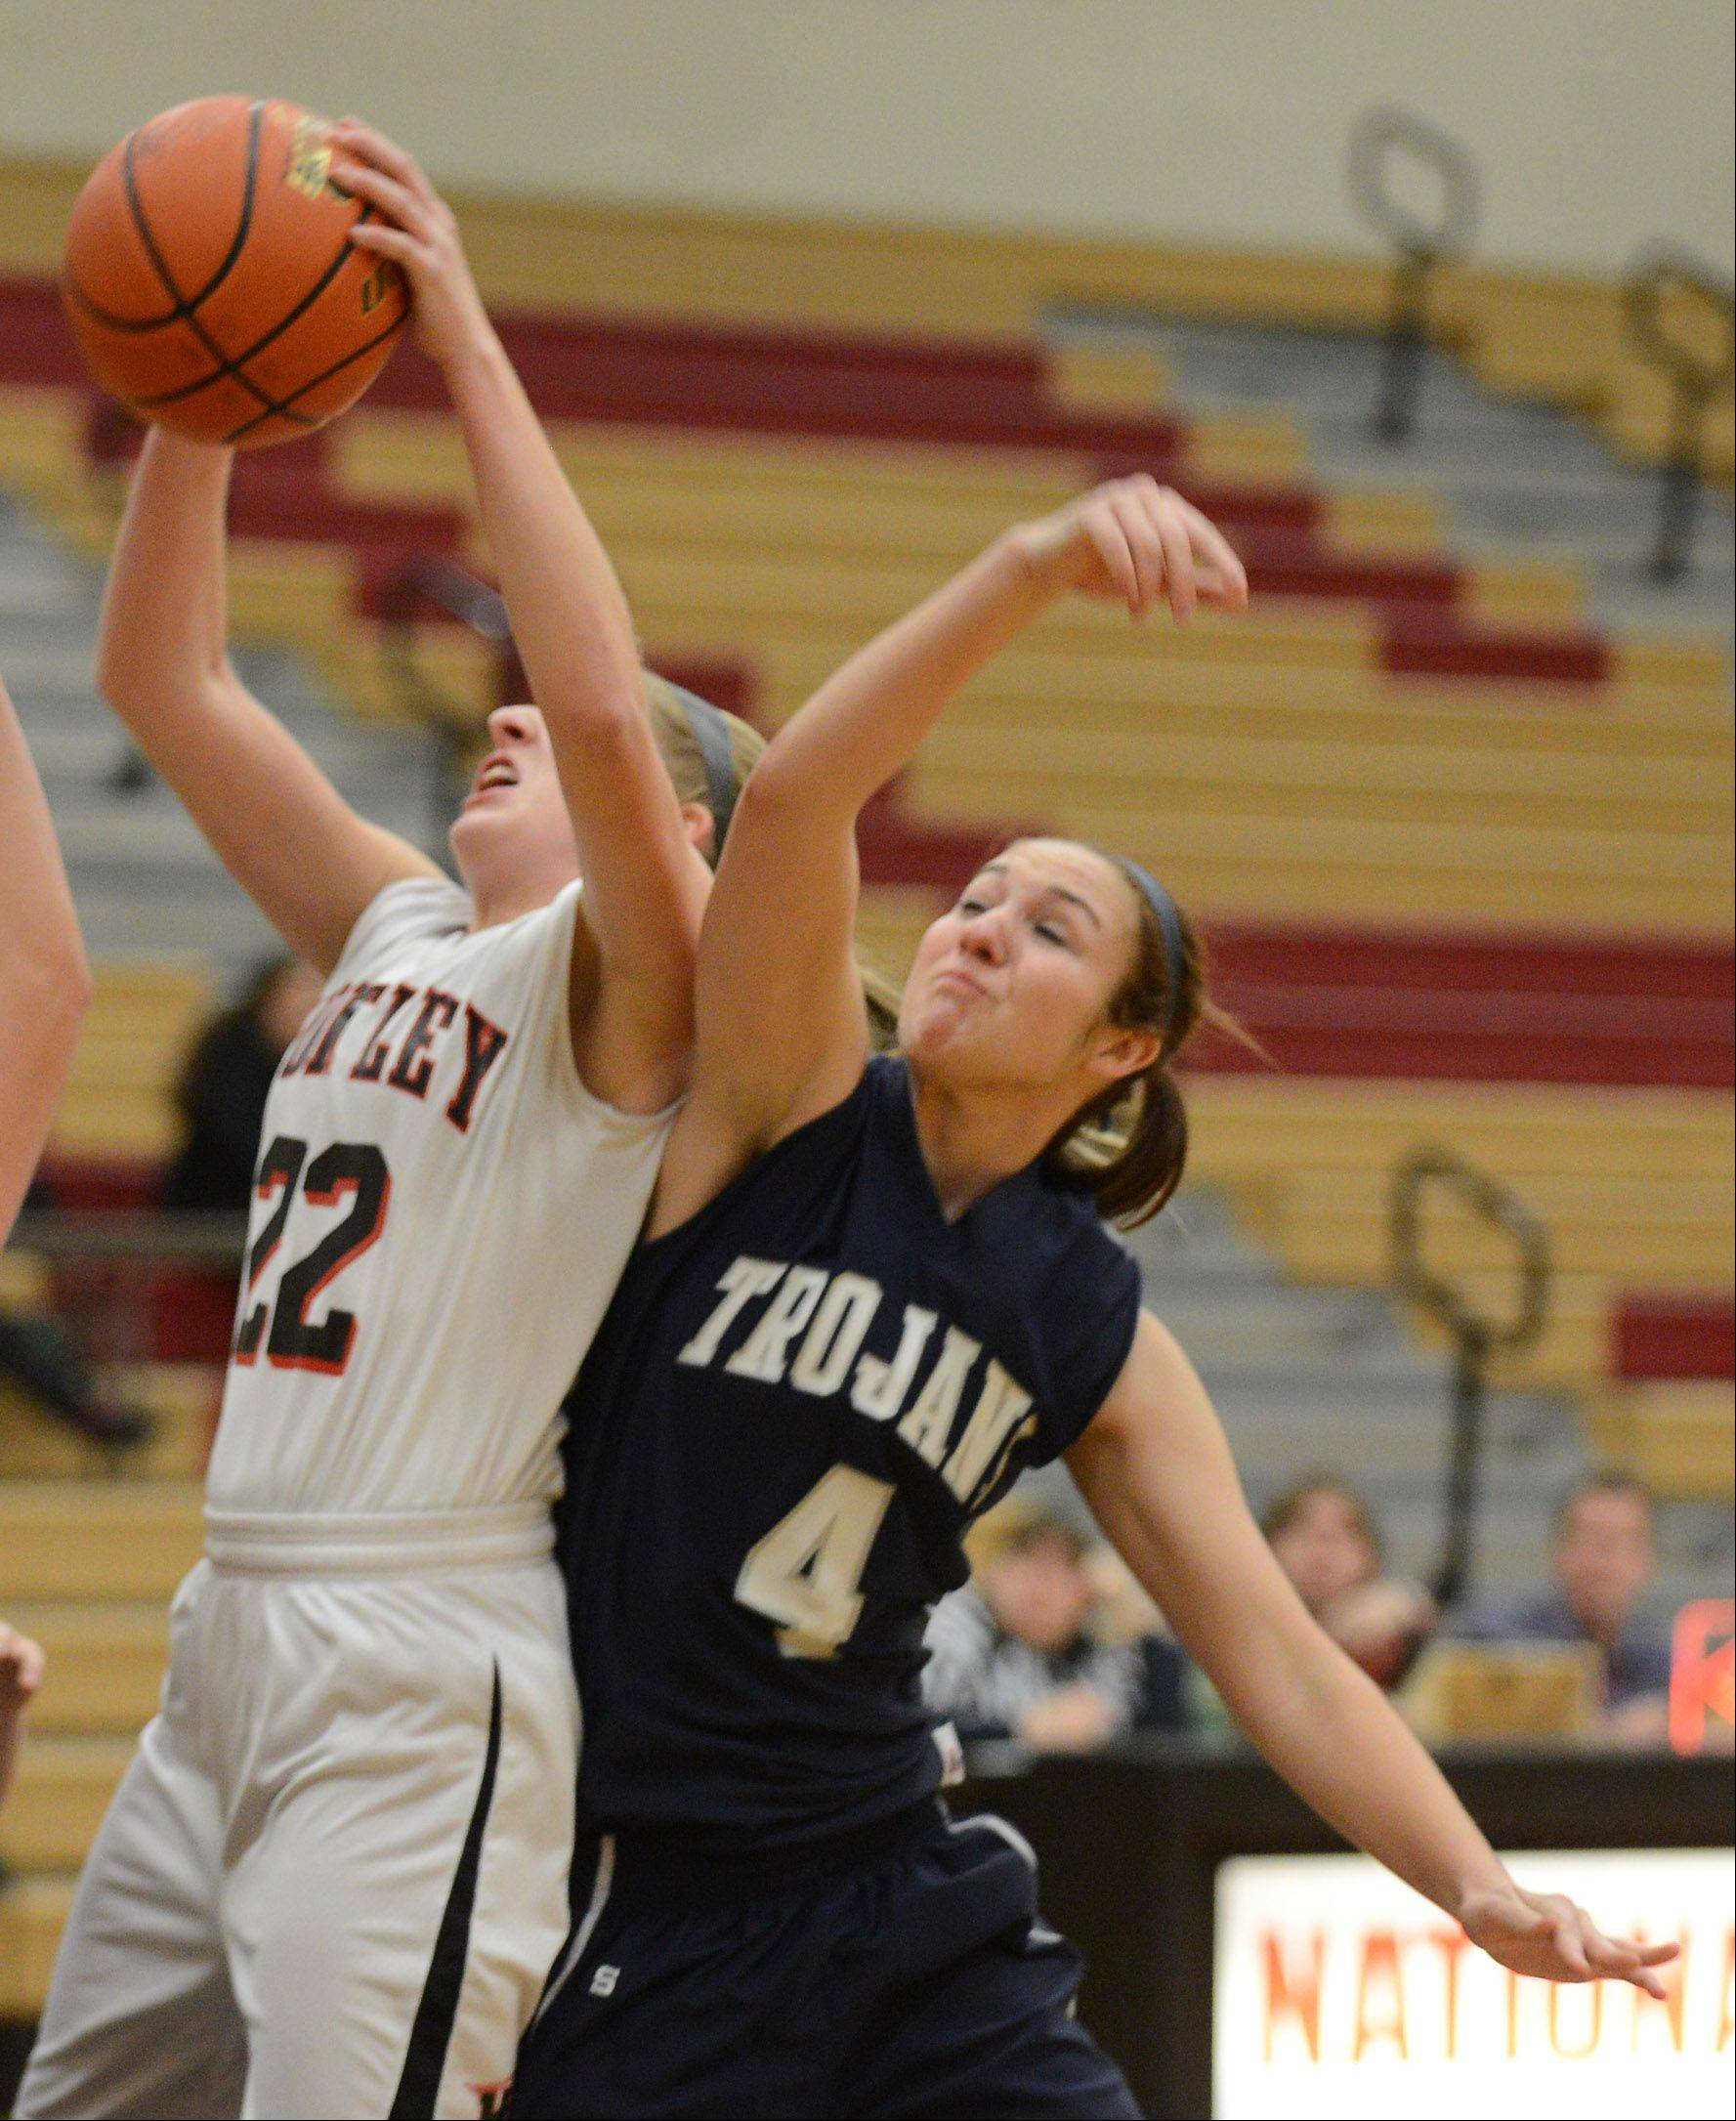 Images from the Cary-Grove vs. Huntley girls basketball game Monday, December 9, 2013.